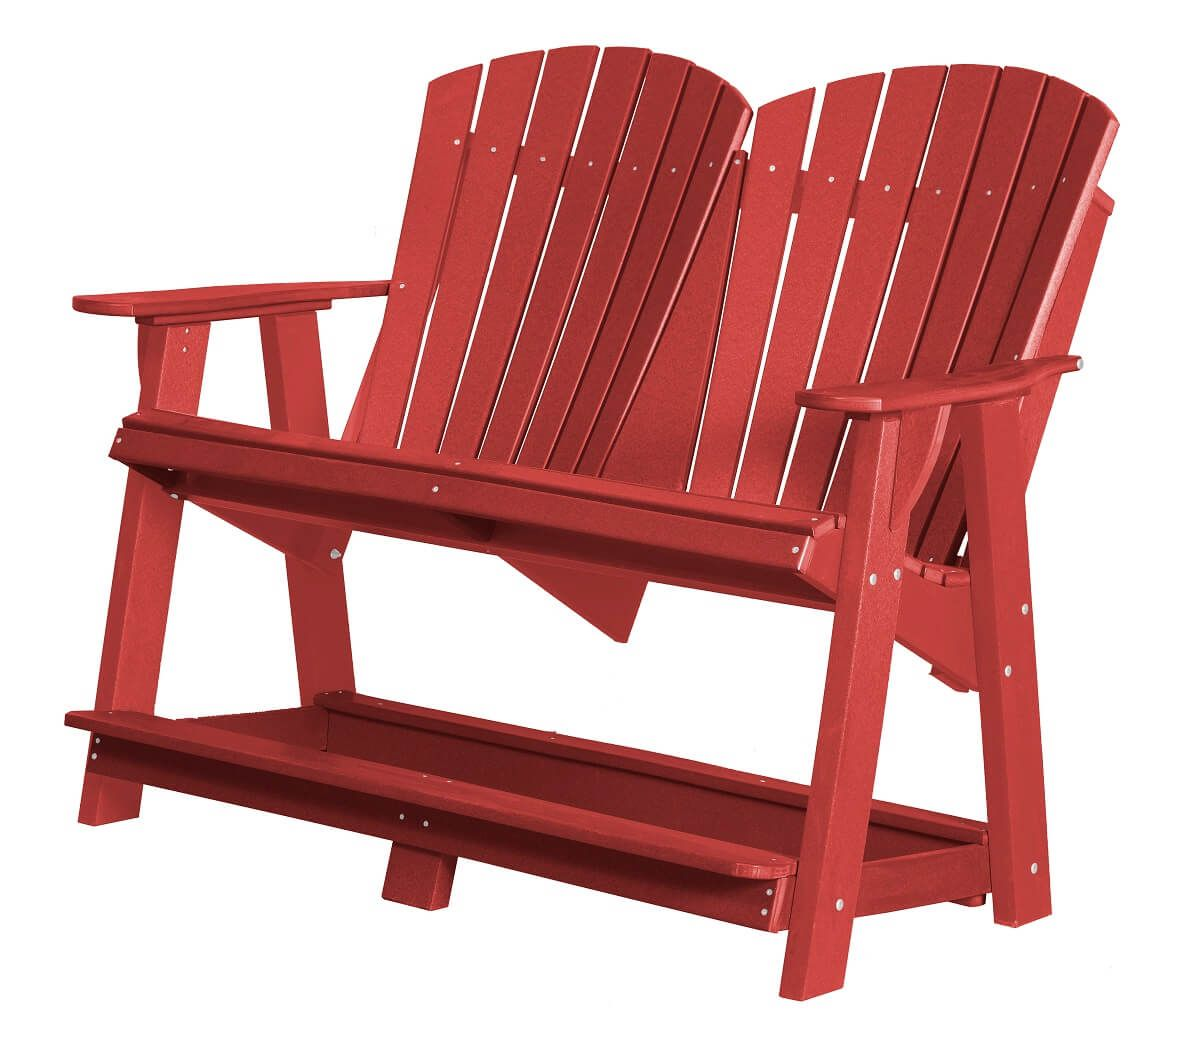 Cardinal Red Sidra Double High Adirondack